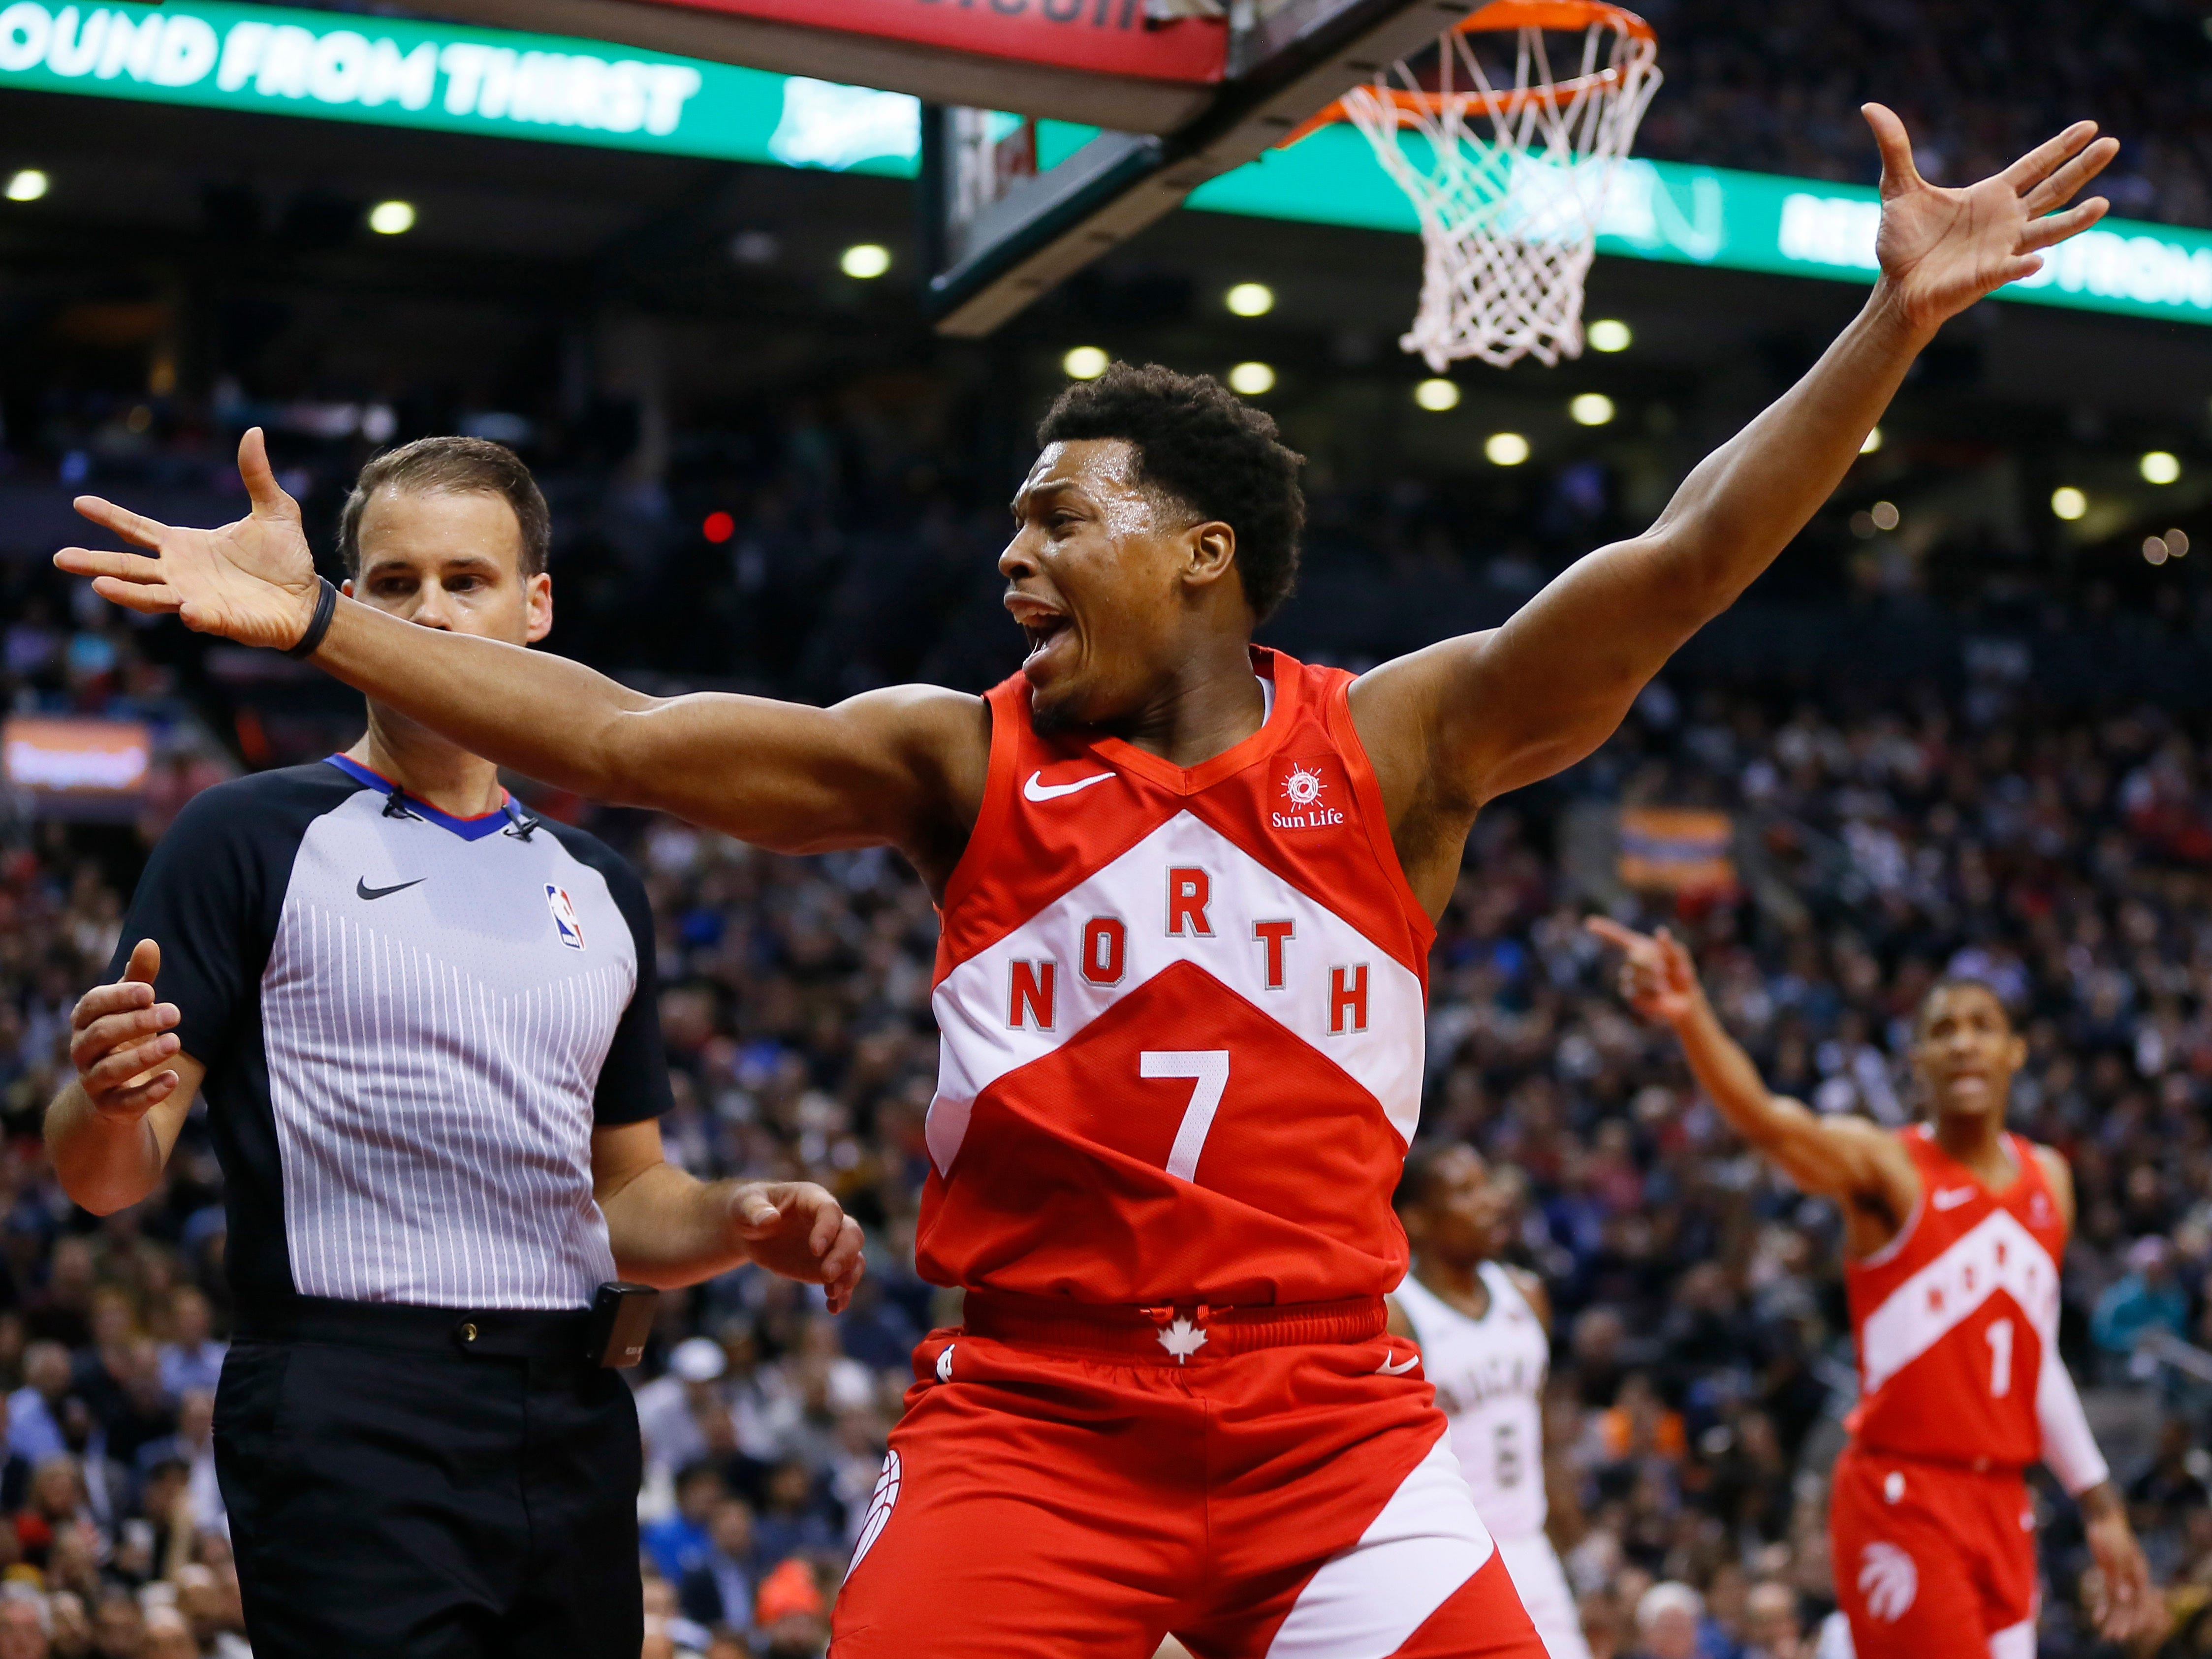 Raptors guard Kyle Lowry, who was named to the all-star game as a reserve before Toronto's contest against the Bucks on Thursday, is none too pleased with a call by the refs in the first half.